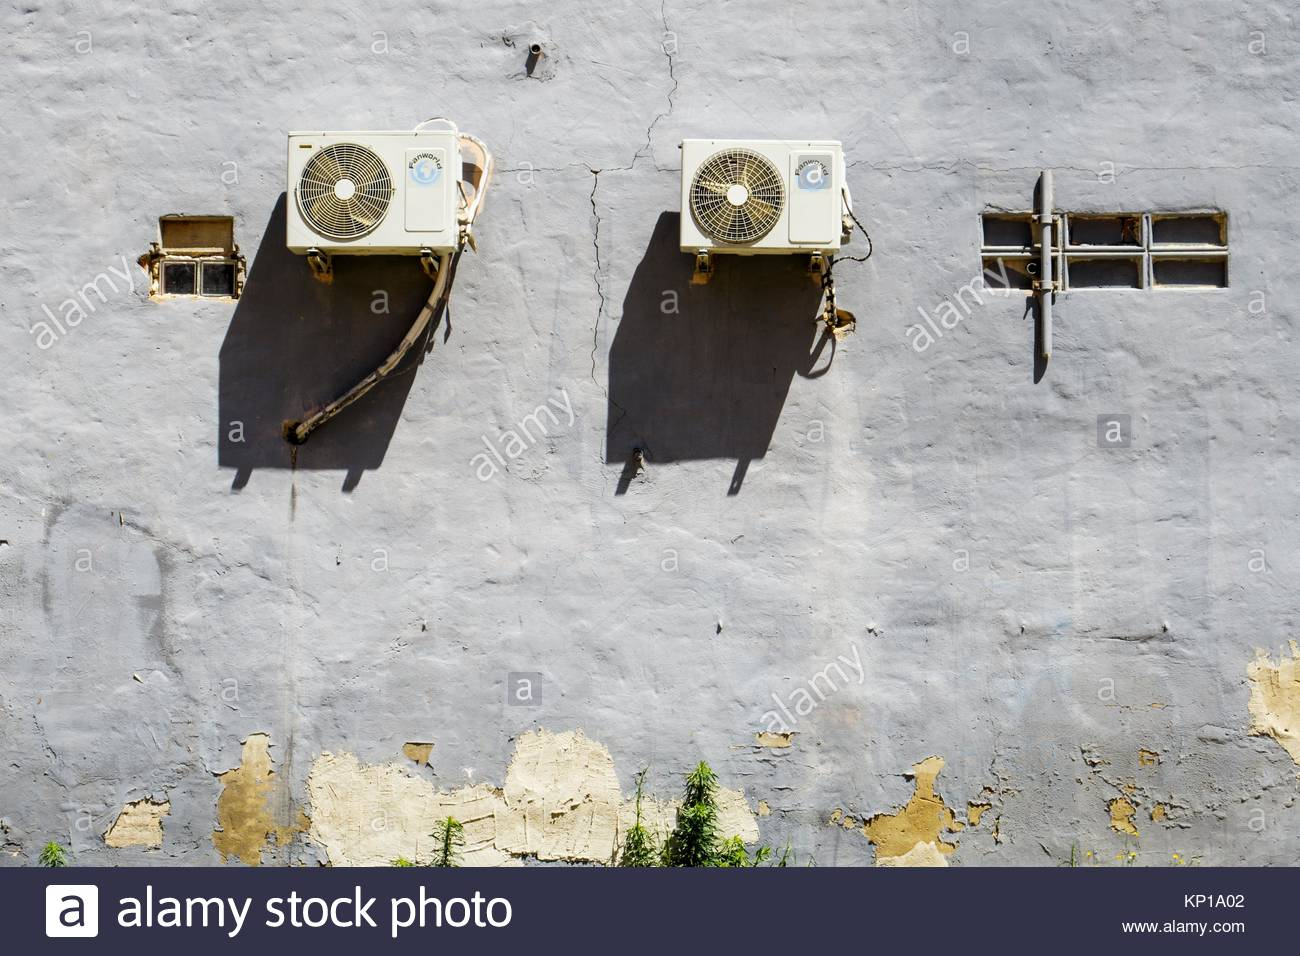 Air conditioner units outside on wall of building Stock Photo